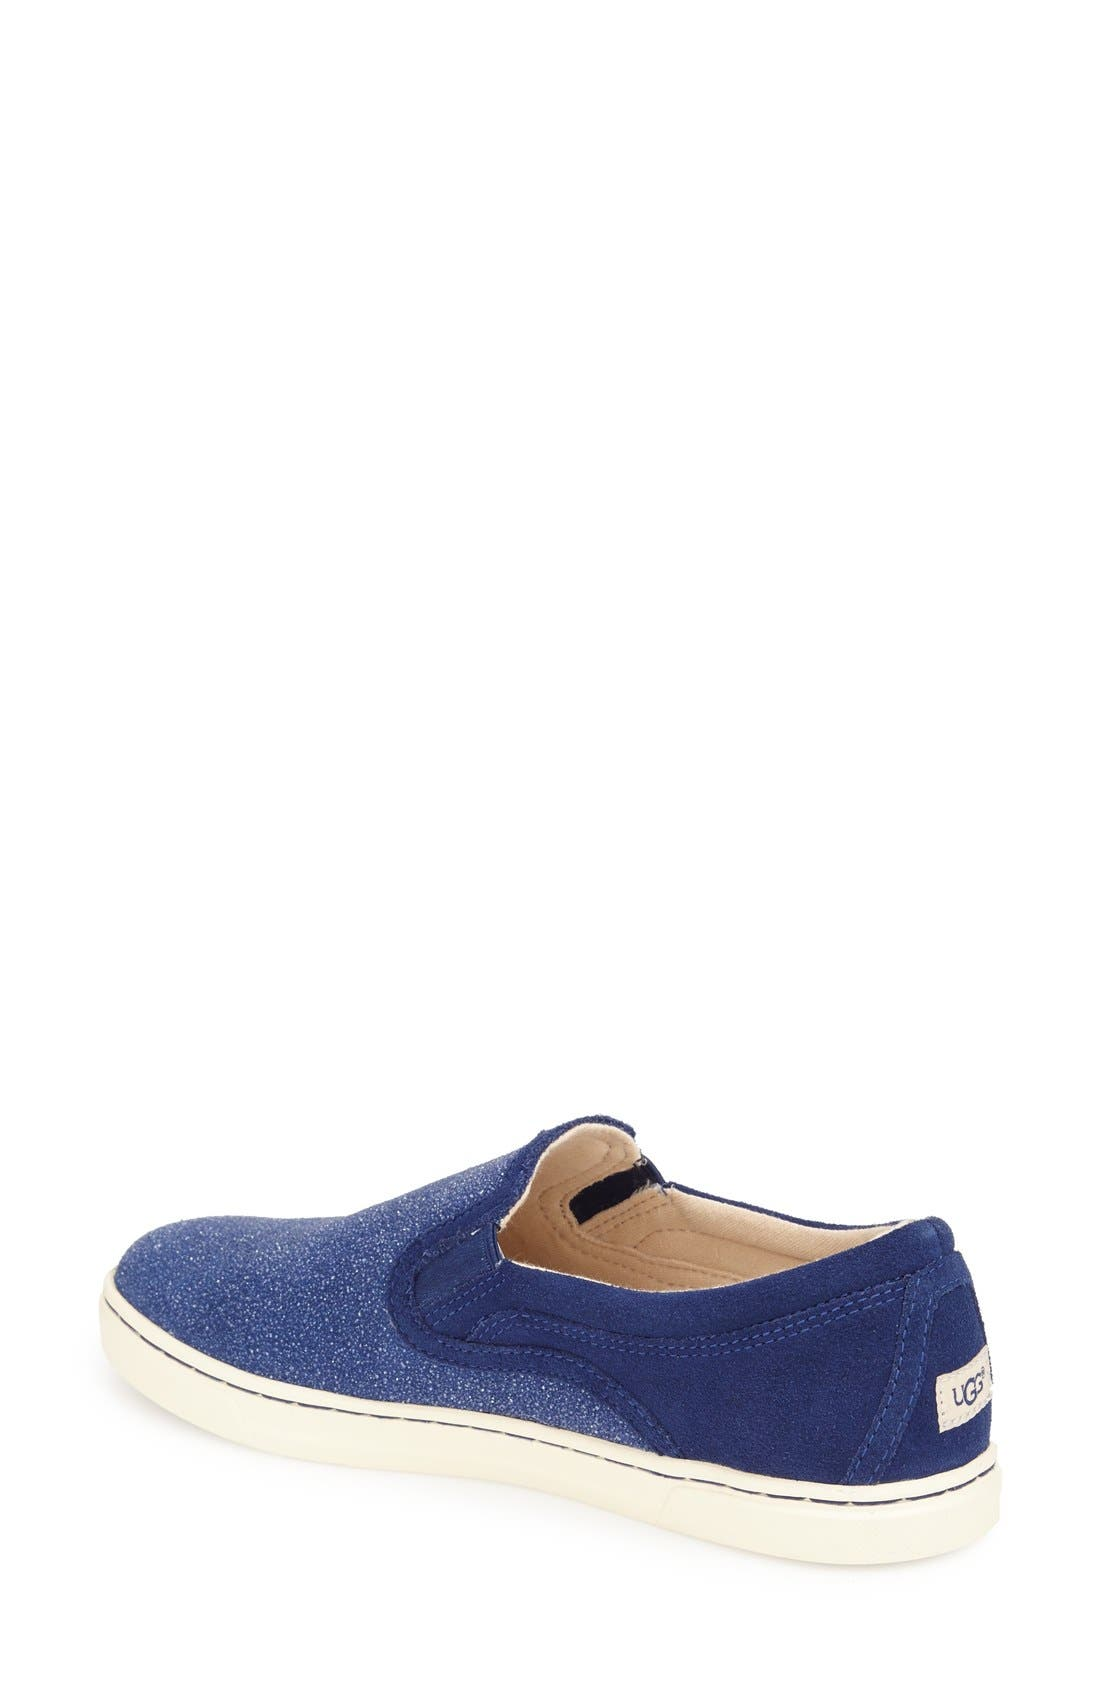 Fierce Slip-On Sneaker,                             Alternate thumbnail 2, color,                             Night Sky Fabric